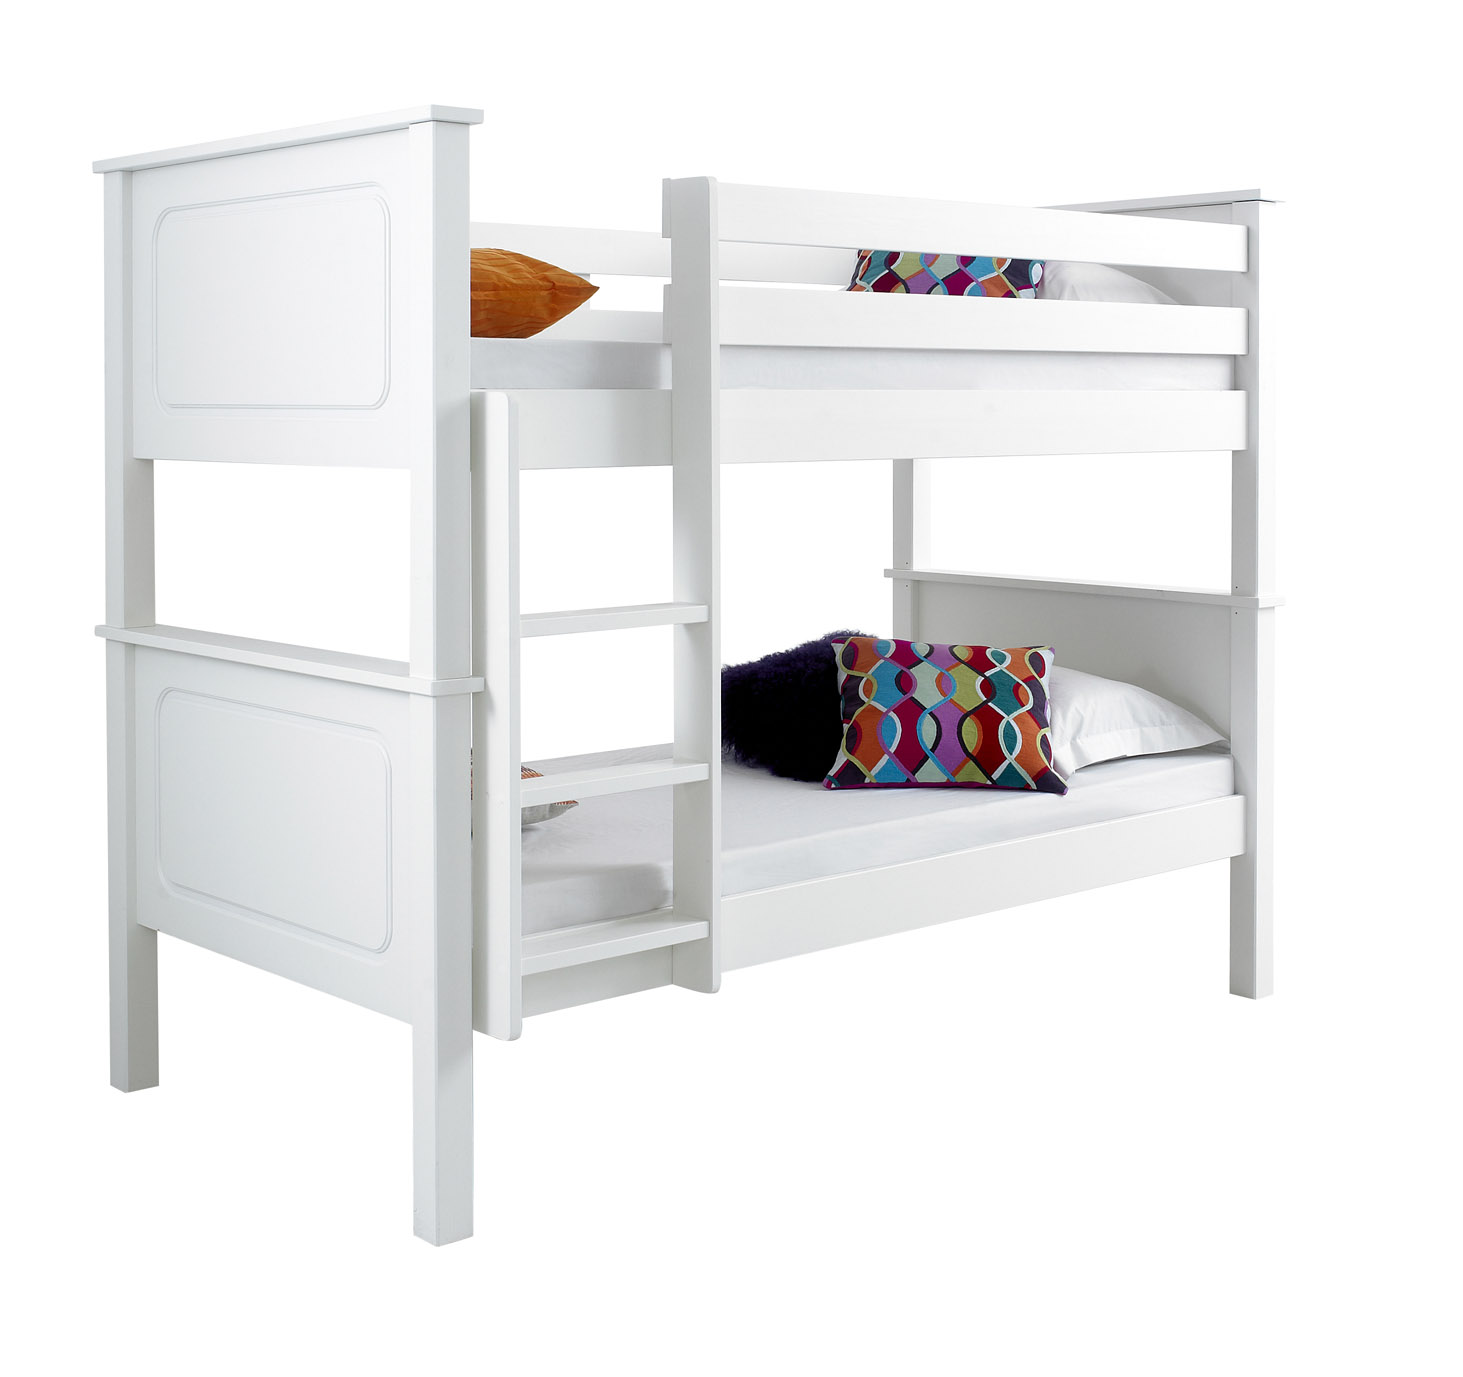 Betternowm Co Uk Vancouver Solid Pine Wooden Bunk Bed With 2 X